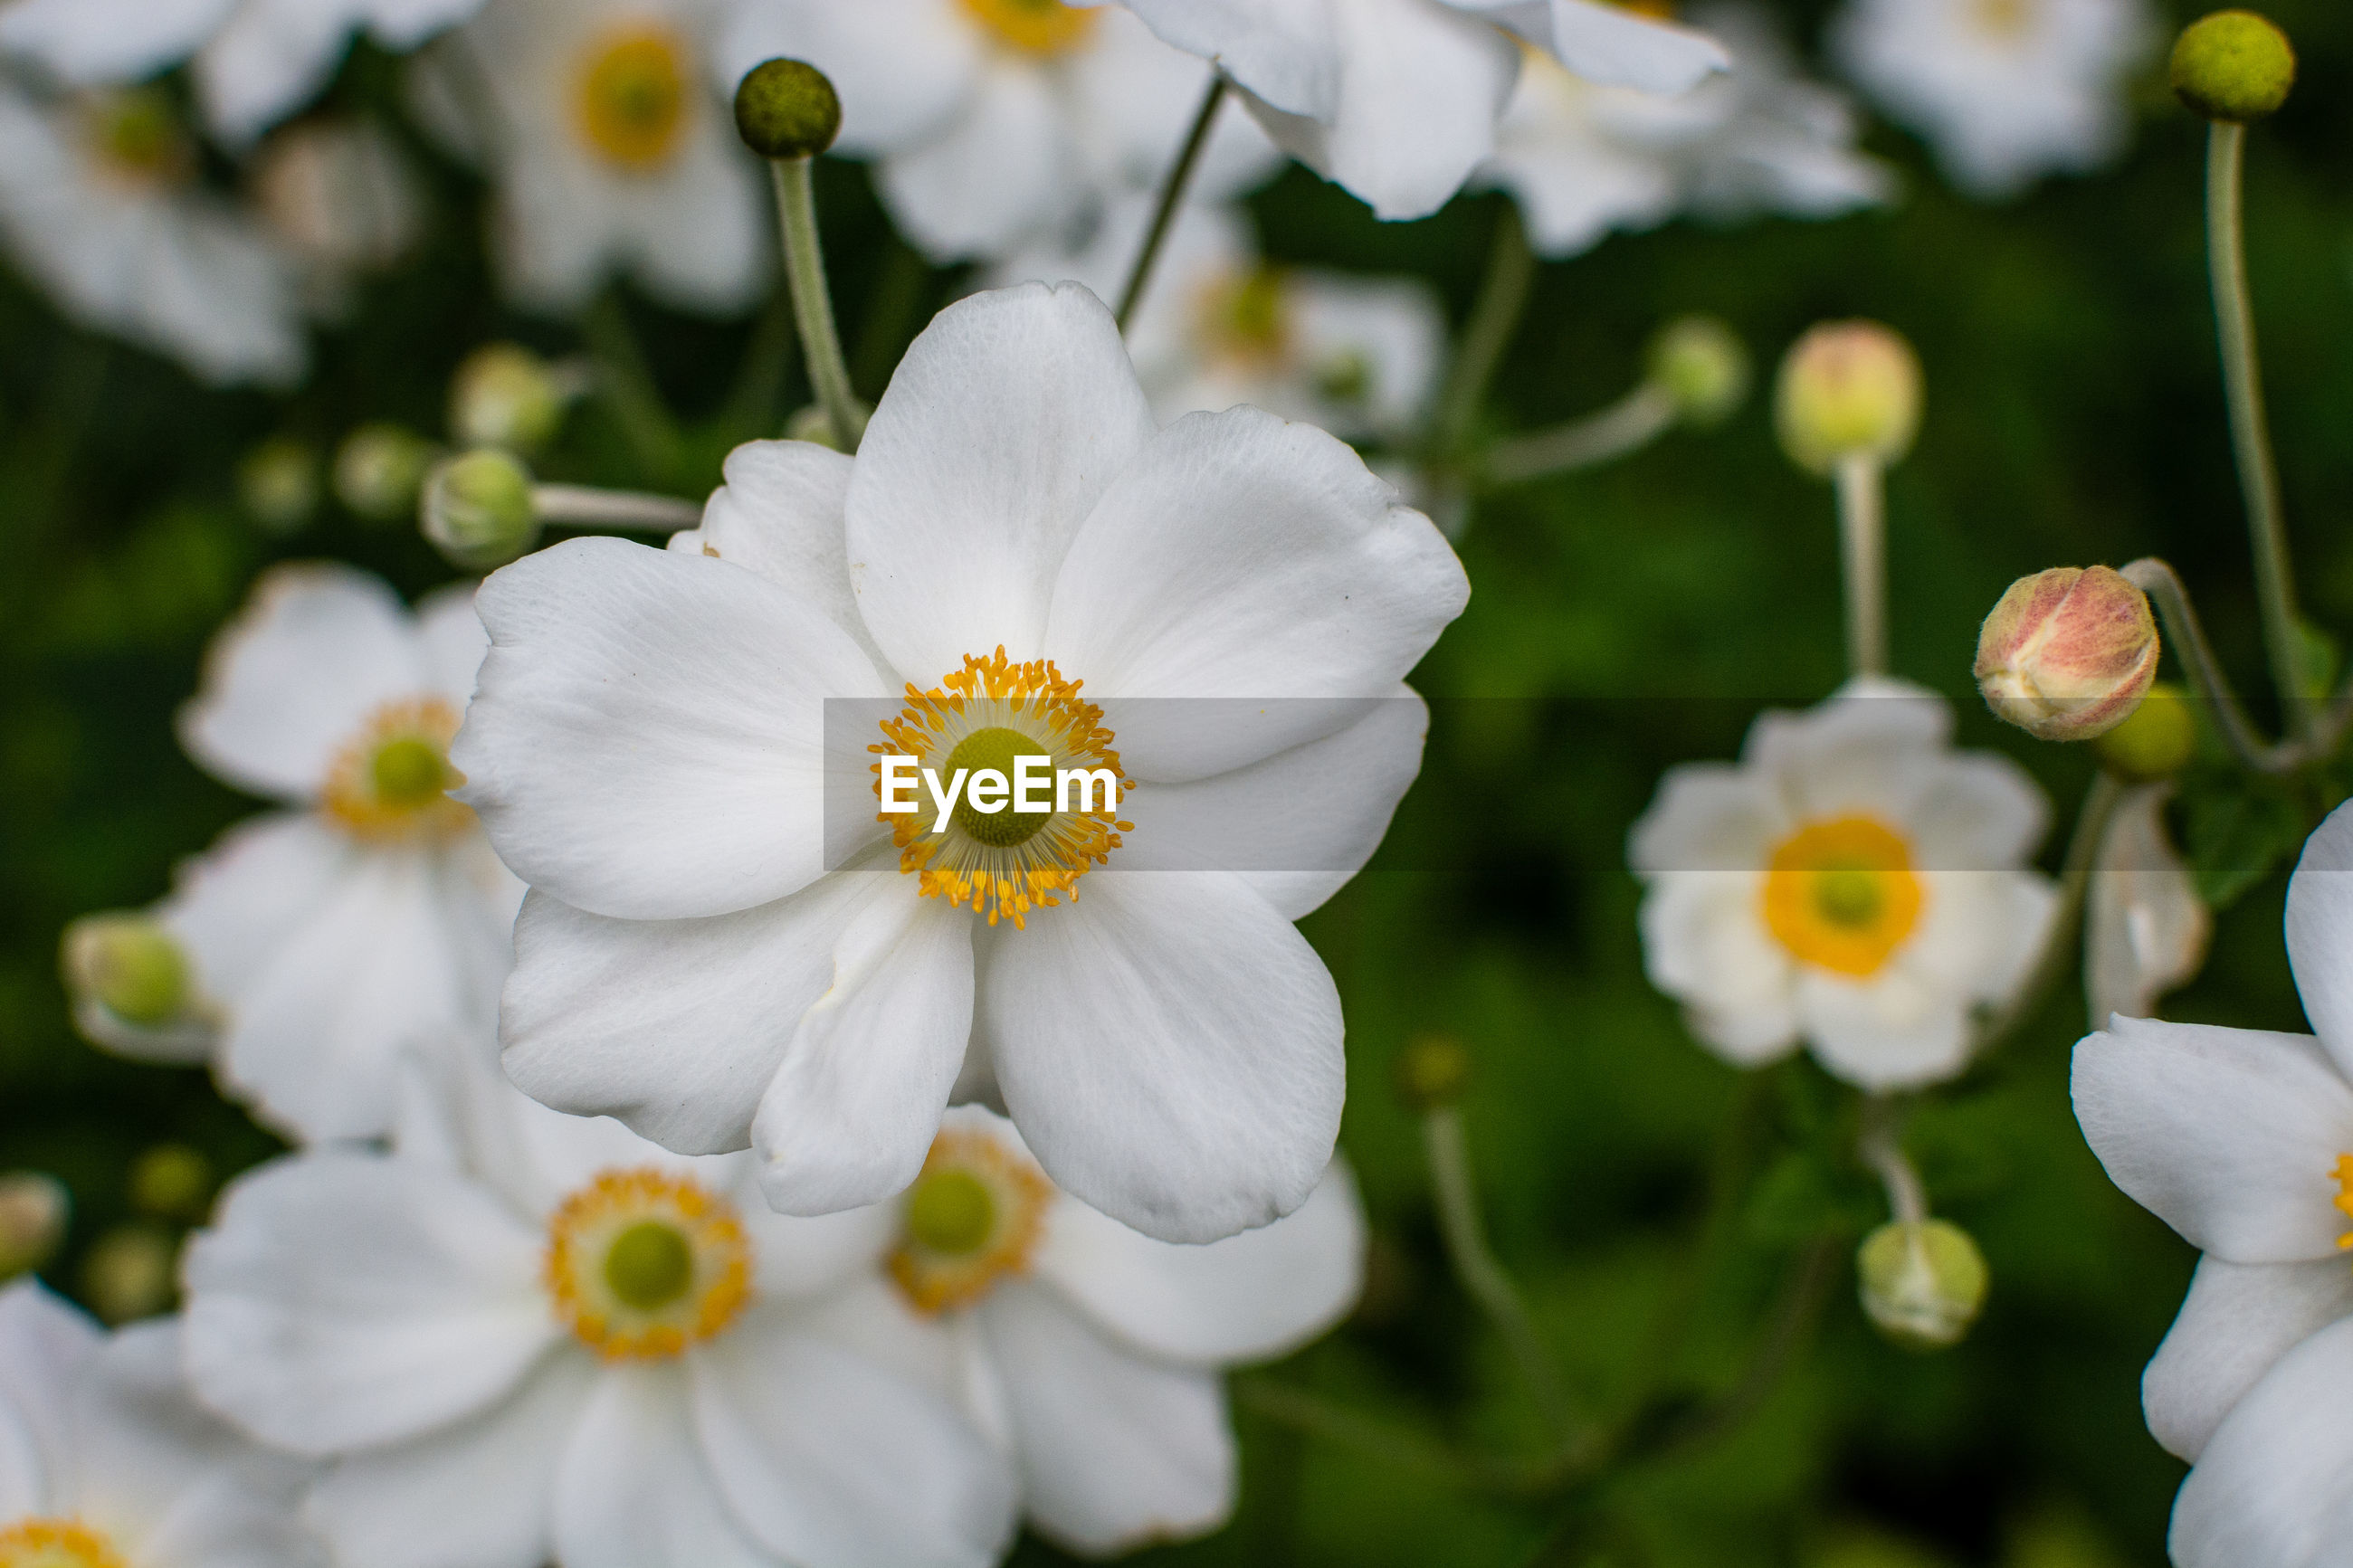 CLOSE-UP OF WHITE DAISY FLOWERS